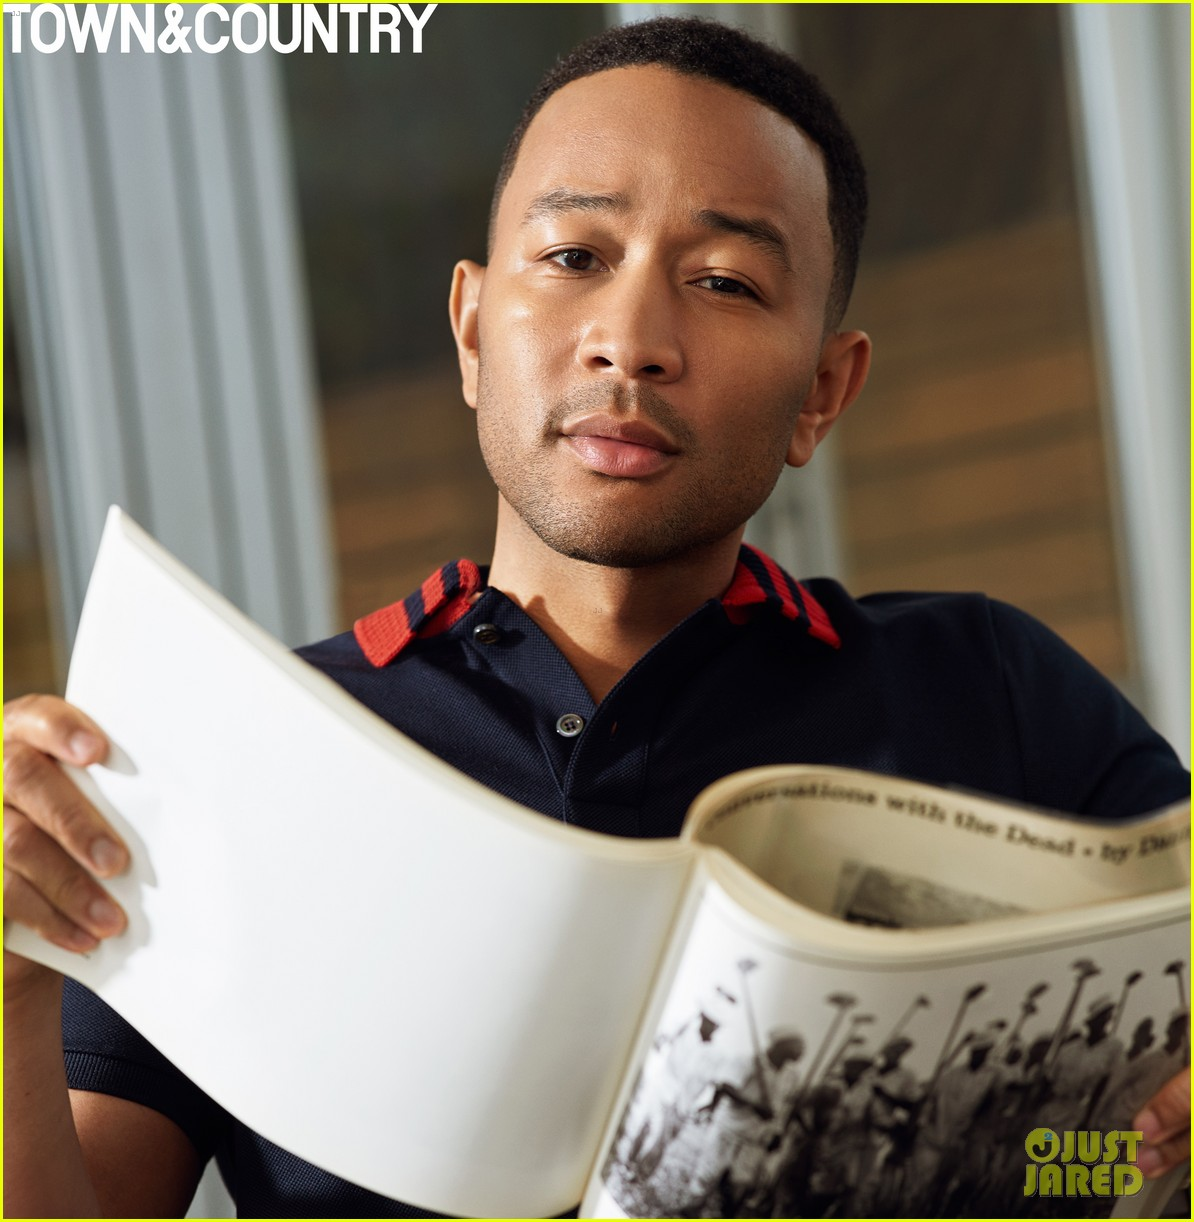 cate blanchett john legend town and country 043896656